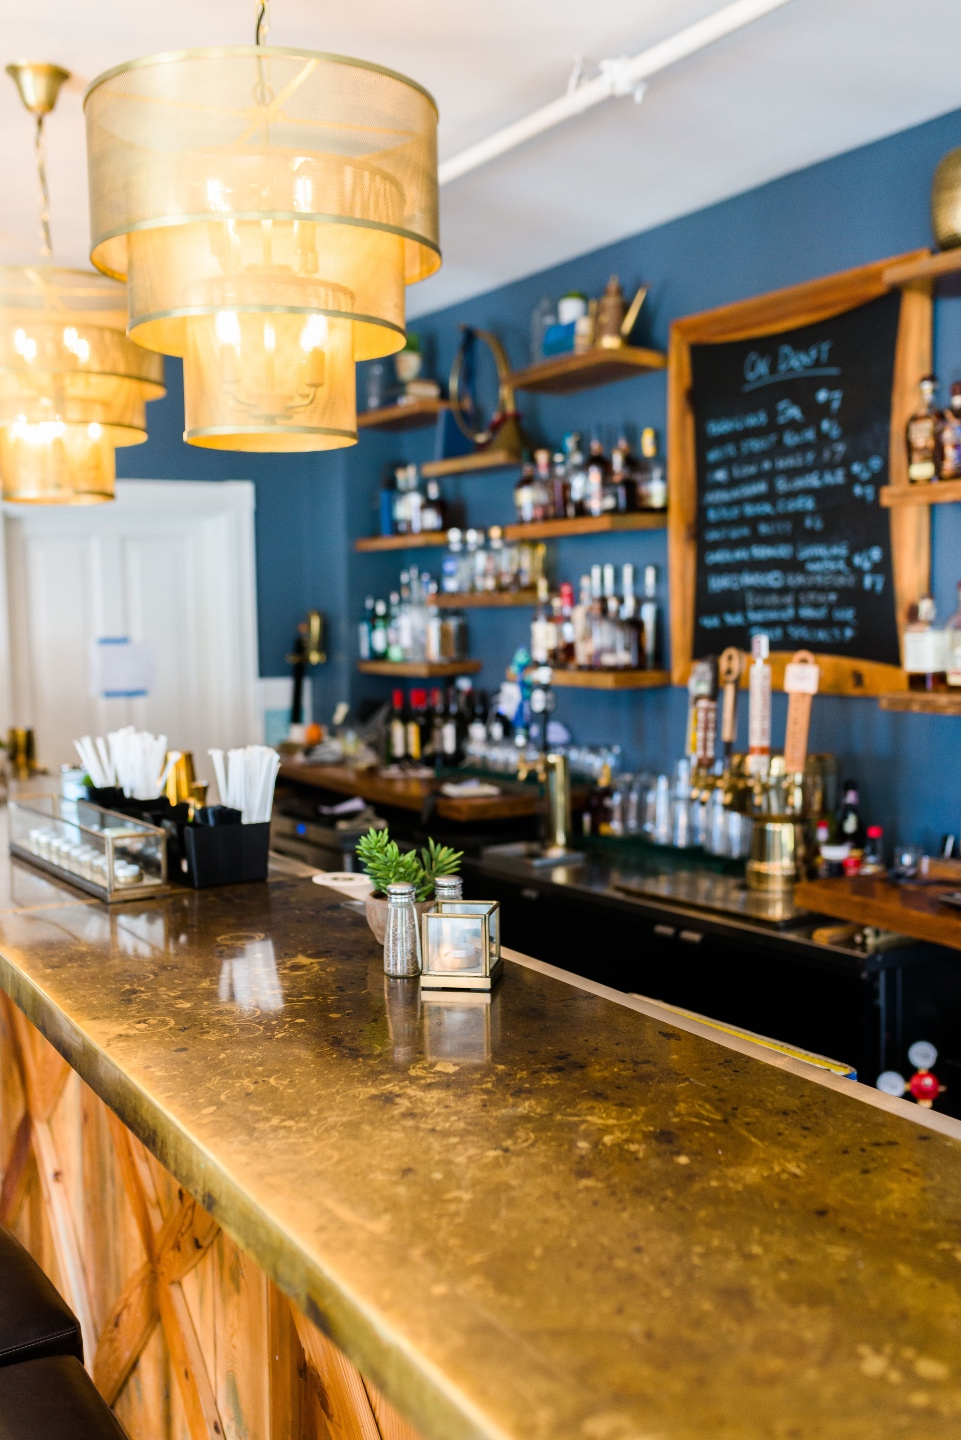 Places to Stay: The Colonial Inn in Hillsborough NC - I'm Fixin' To - @imfixintoblog |The Colonial Inn Hillsborough NC by popular NC travel blog, I'm Fixin' To: image of a bar with a gold counter top.